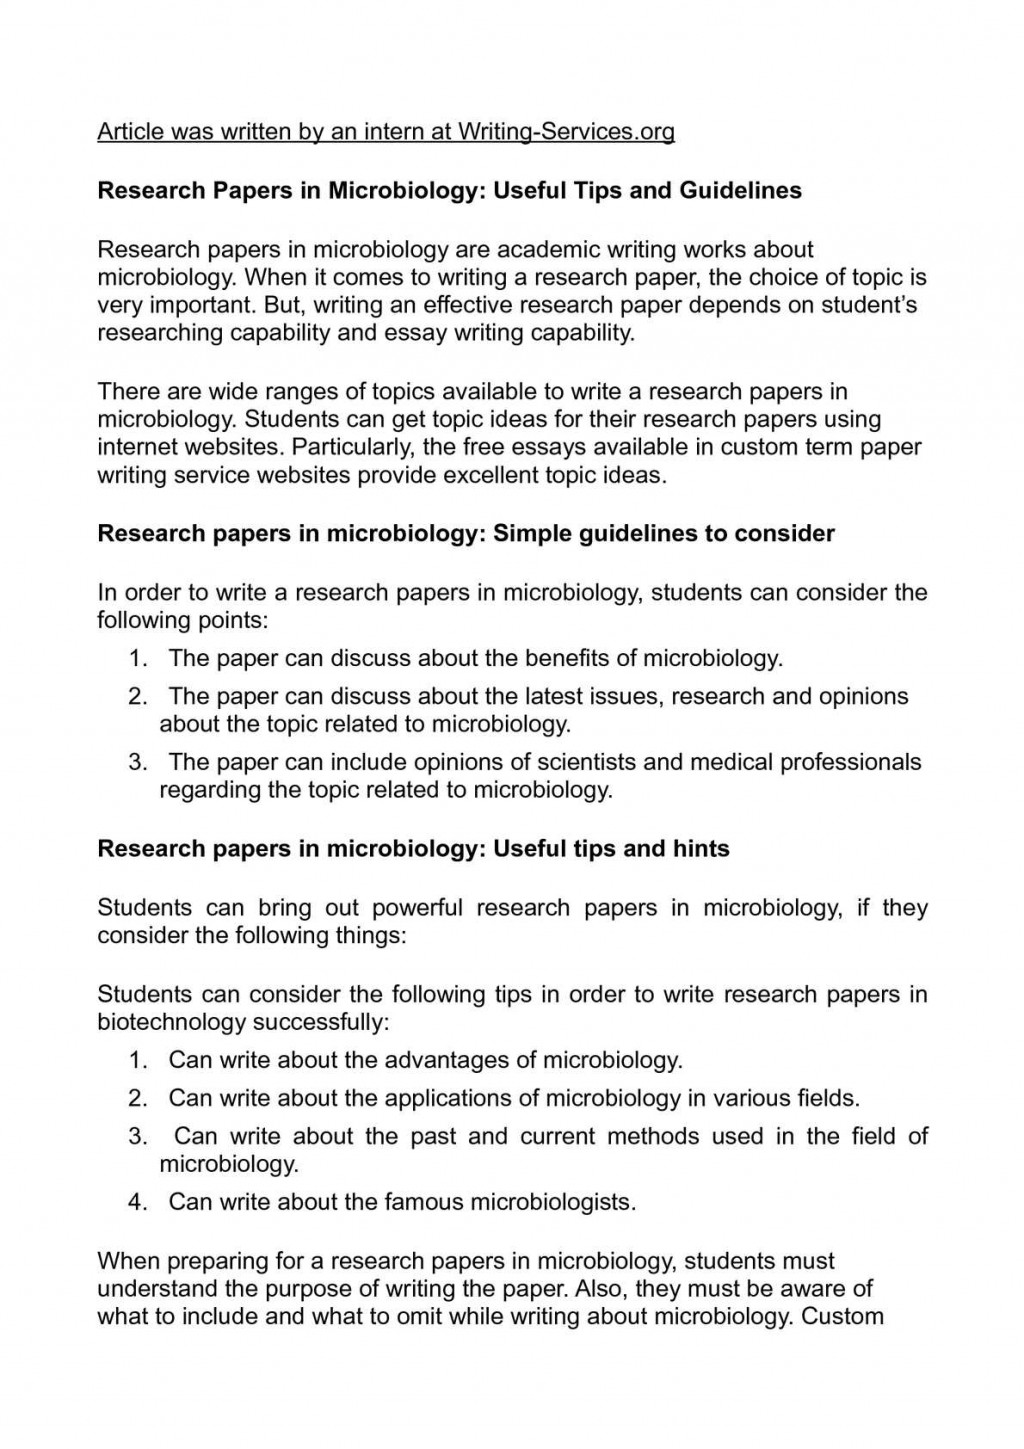 007 Research Paper Tips For Papers Wondrous Effective Writing An Presentation Large